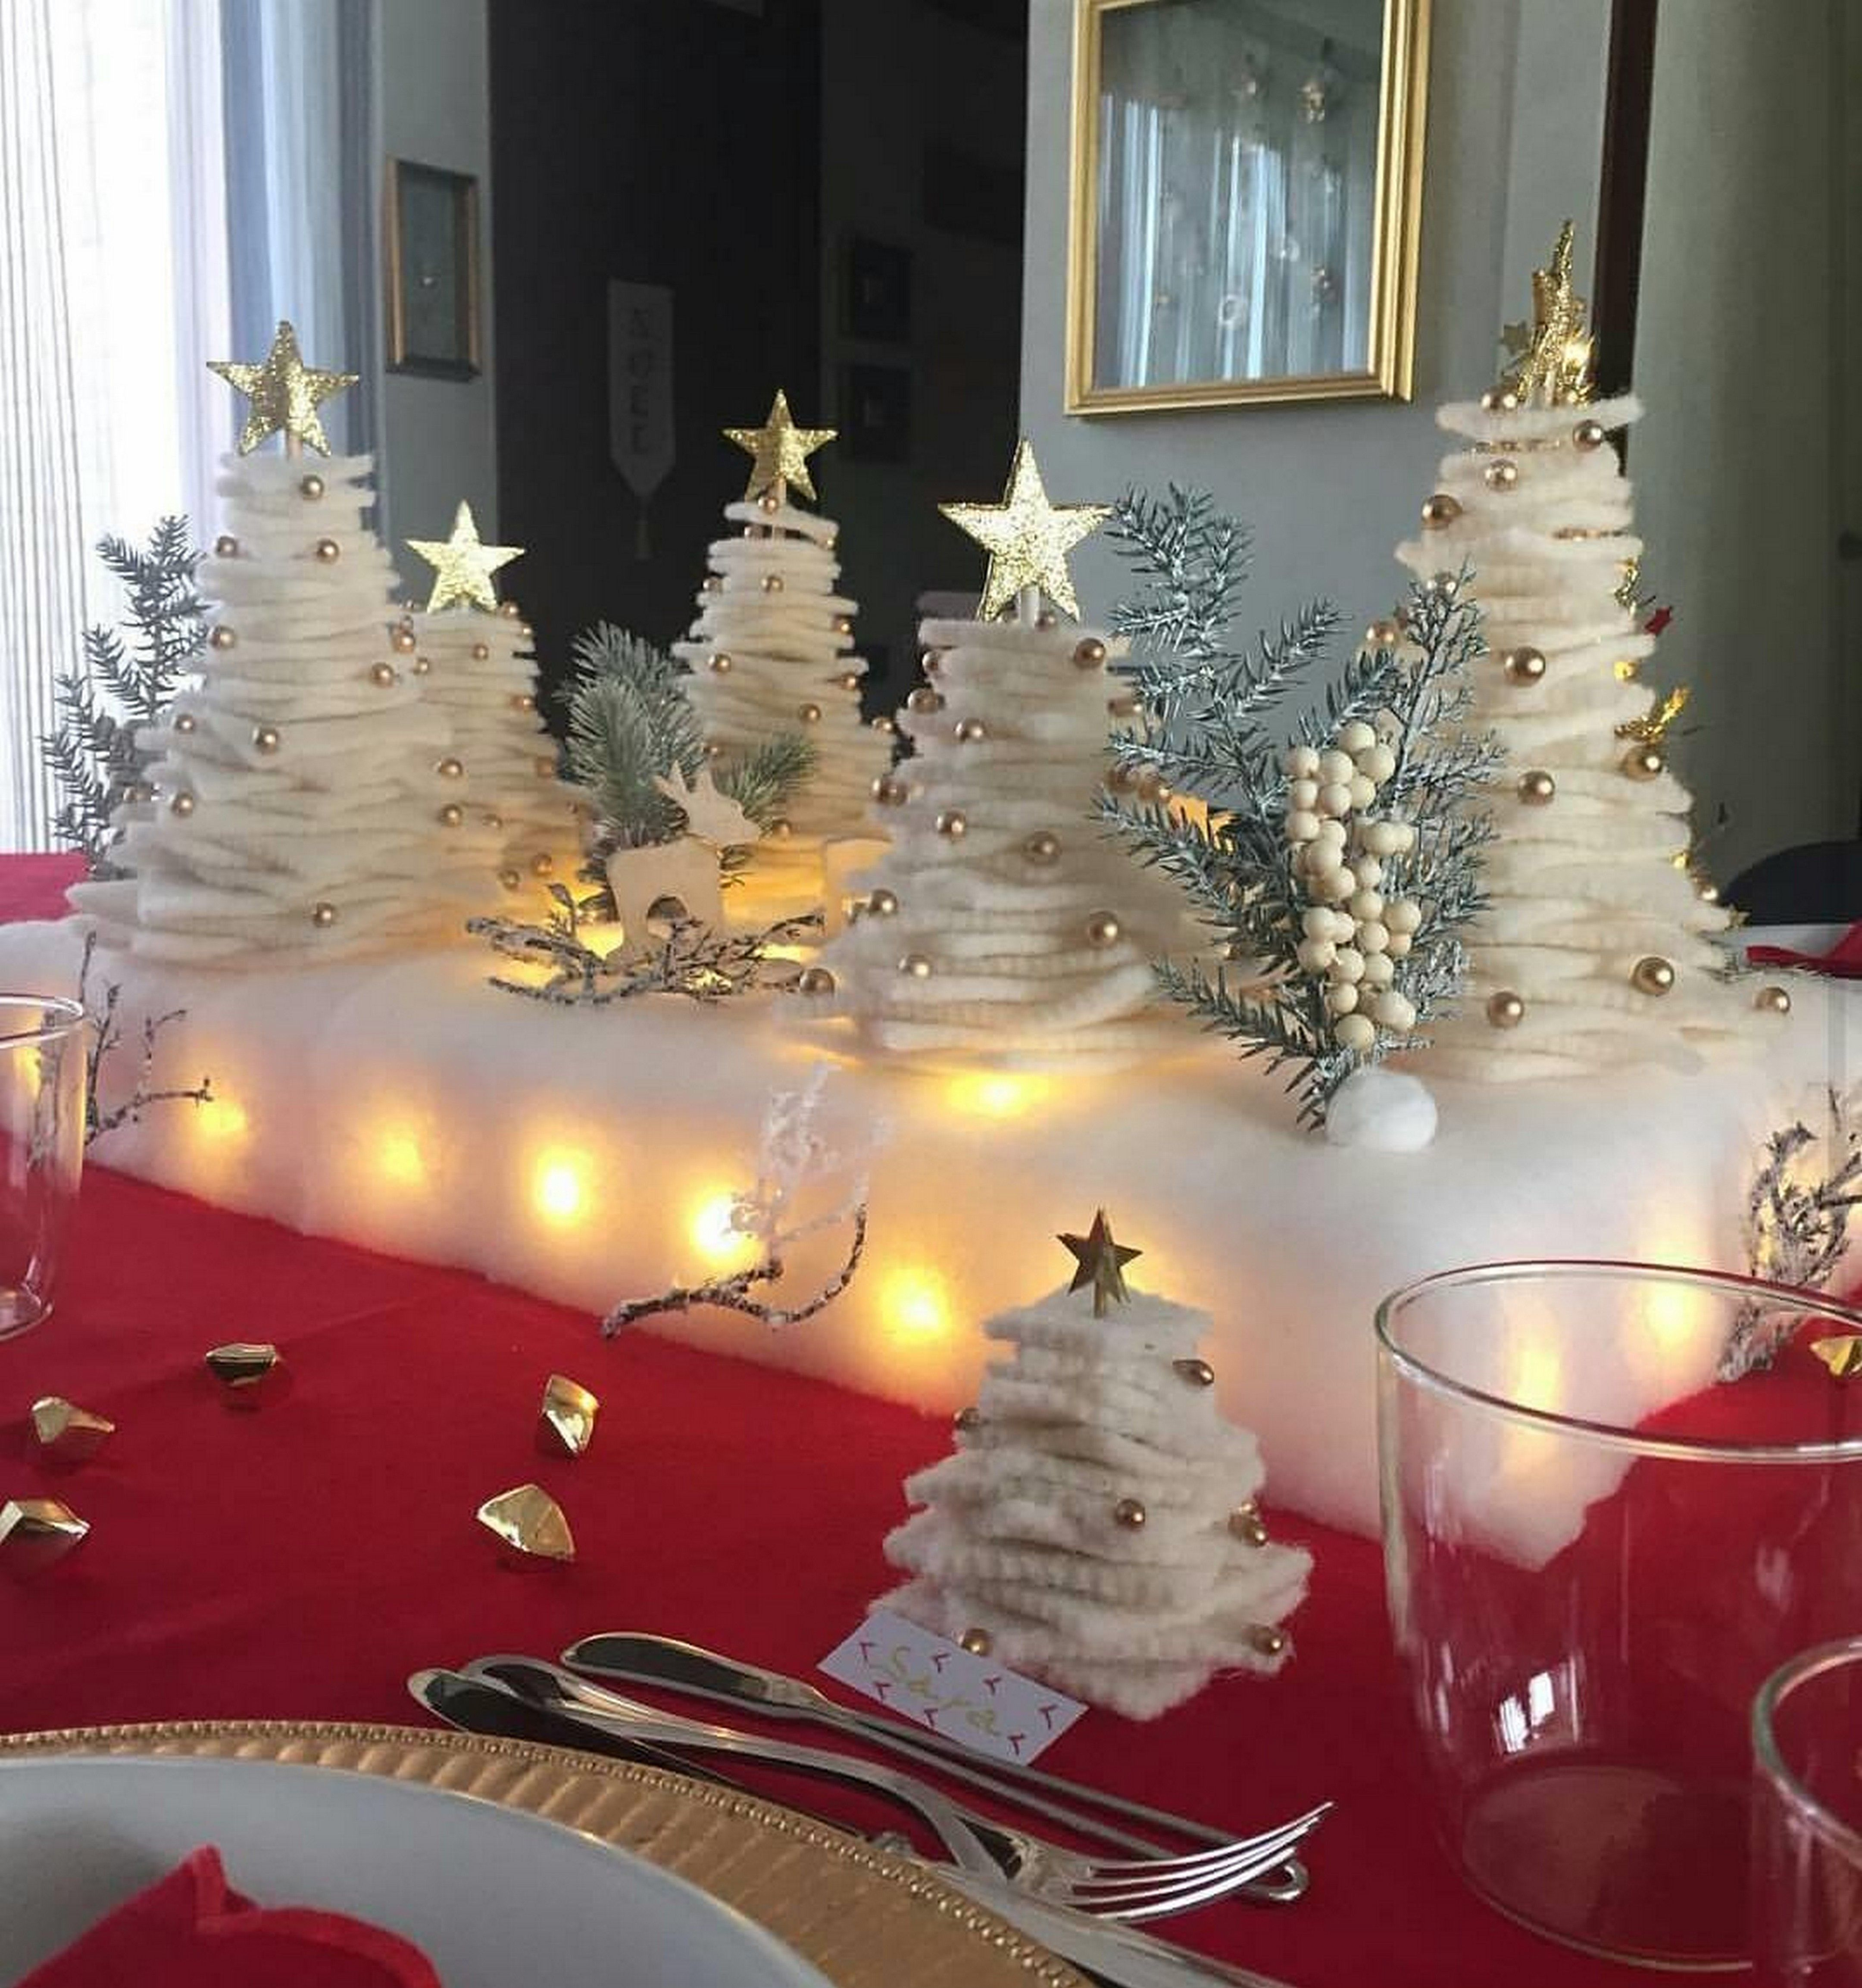 lighting led christmas pin of flocked with and silver inc pathfinder pihakis elegant modern white group decorations by tree the rachel decor clear